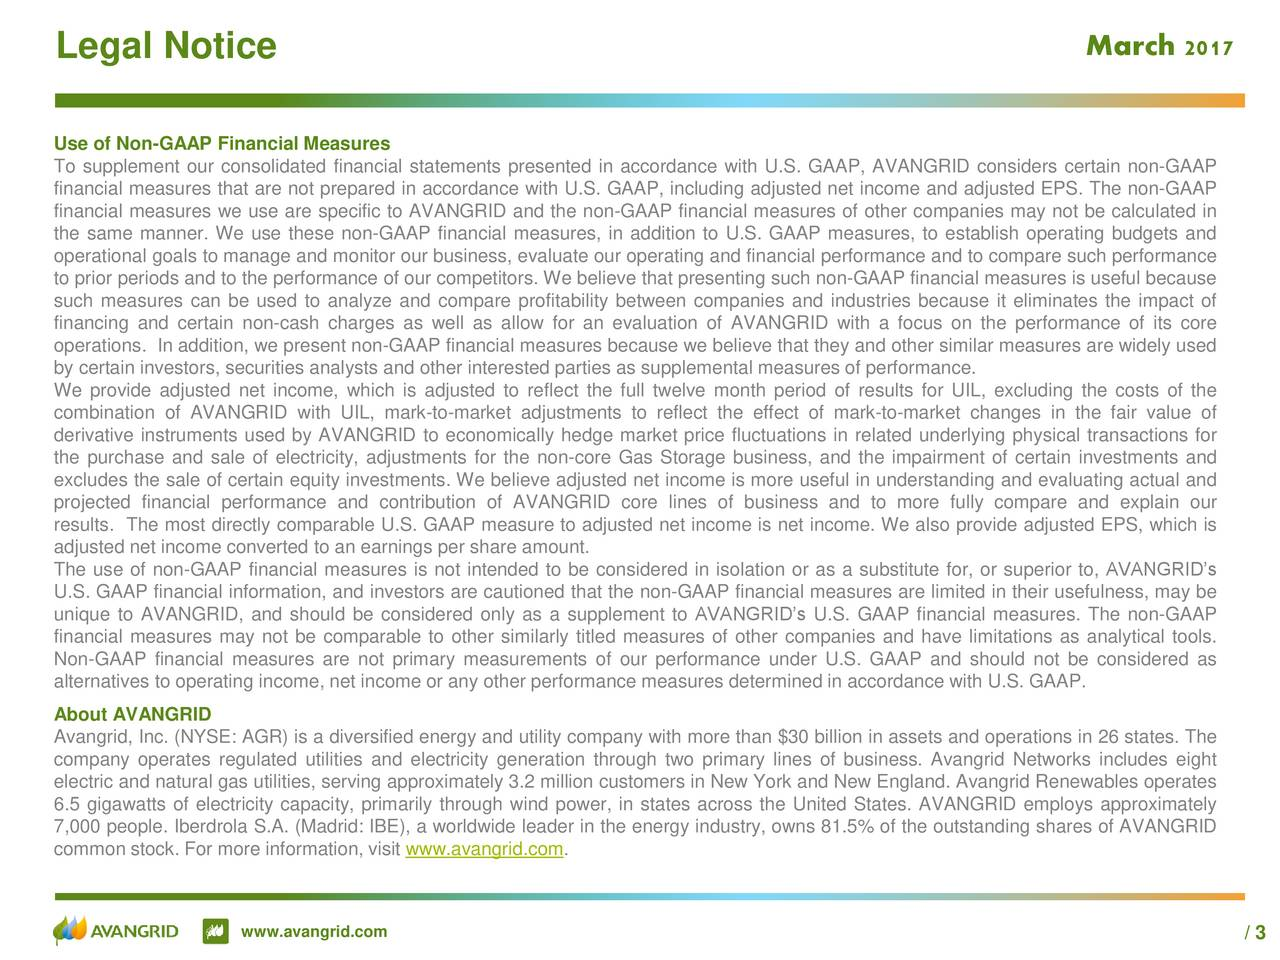 Legal Notice Ma Outlook2017 Use of Non-GAAP Financial Measures To supplement our consolidated financial statements presented in accordance with U.S. GAAP, AVANGRID considers certain non-GAAP financial measures that are not prepared in accordance with U.S. GAAP, including adjusted net income and adjusted EPS. The non-GAAP financial measures we use are specific to AVANGRID and the non-GAAP financial measures of other companies may not be calculated in the same manner. We use these non-GAAP financial measures, in addition to U.S. GAAP measures, to establish operating budgets and operational goals to manage and monitor our business, evaluate our operating and financial performance and to compare such performance to prior periods and to the performance of our competitors. We believe that presenting such non-GAAP financial measures is useful because such measures can be used to analyze and compare profitability between companies and industries because it eliminates the impact of financing and certain non-cash charges as well as allow for an evaluation of AVANGRID with a focus on the performance of its core operations. In addition, we present non-GAAP financial measures because we believe that they and other similar measures are widely used by certain investors, securities analysts and other interested parties as supplemental measures of performance. We provide adjusted net income, which is adjusted to reflect the full twelve month period of results for UIL, excluding the costs of the combination of AVANGRID with UIL, mark-to-market adjustments to reflect the effect of mark-to-market changes in the fair value of derivative instruments used by AVANGRID to economically hedge market price fluctuations in related underlying physical transactions for the purchase and sale of electricity, adjustments for the non-core Gas Storage business, and the impairment of certain investments and excludes the sale of certain equity investments. We believe adjusted net income is more useful i